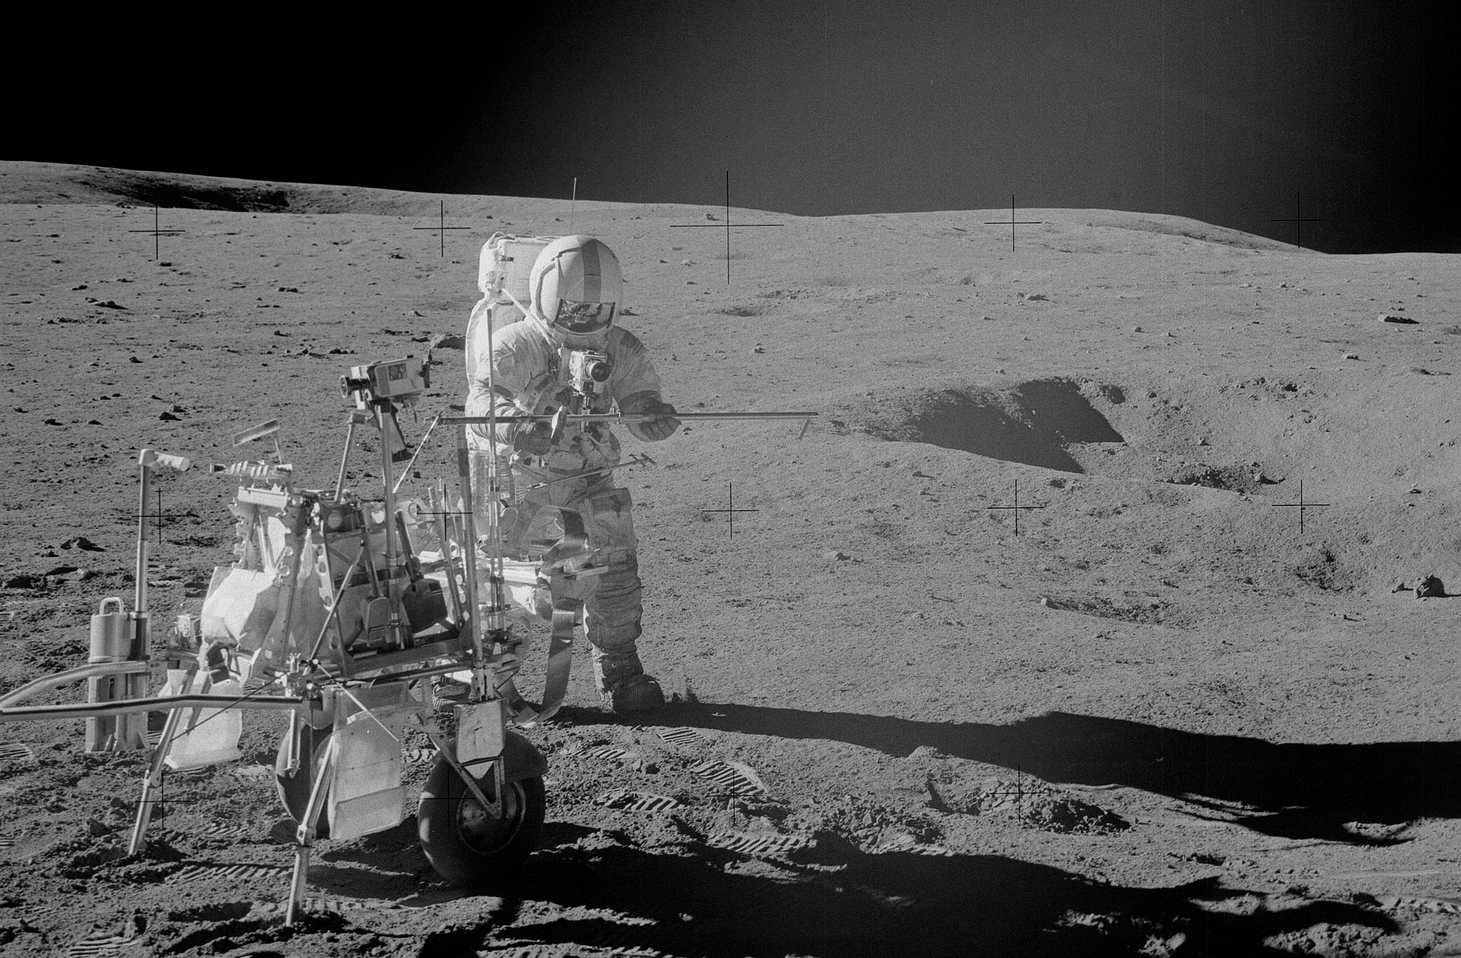 Apollo 14 astronaut Al Bean collects samples in the region where the evidence of very early lunar crust formation comes from. - Image Credit: NASA, AS14-68-9405